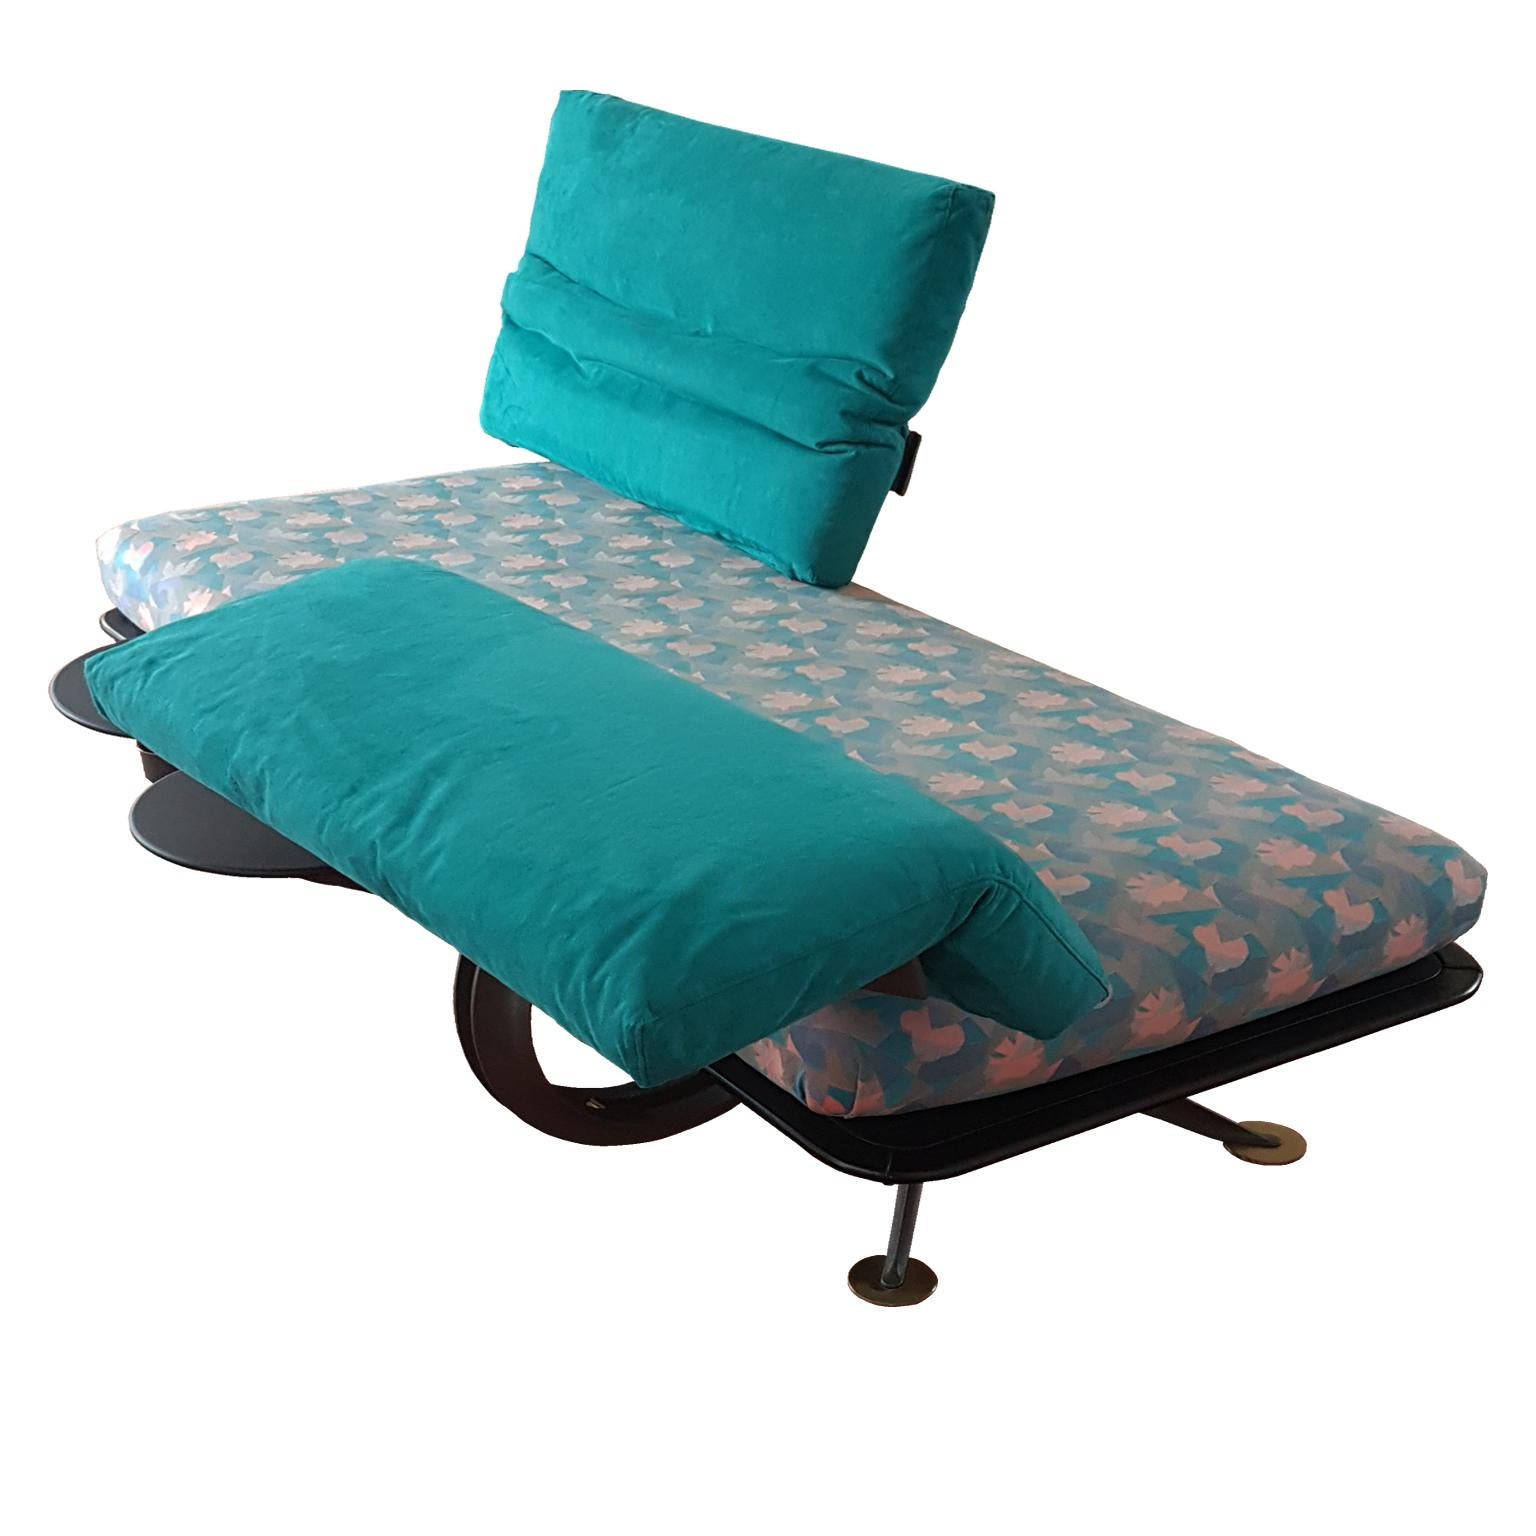 Outstanding Italian Bb Turquoise And Floreal Fabric Daybed Sofa With Back Rotation Bralicious Painted Fabric Chair Ideas Braliciousco